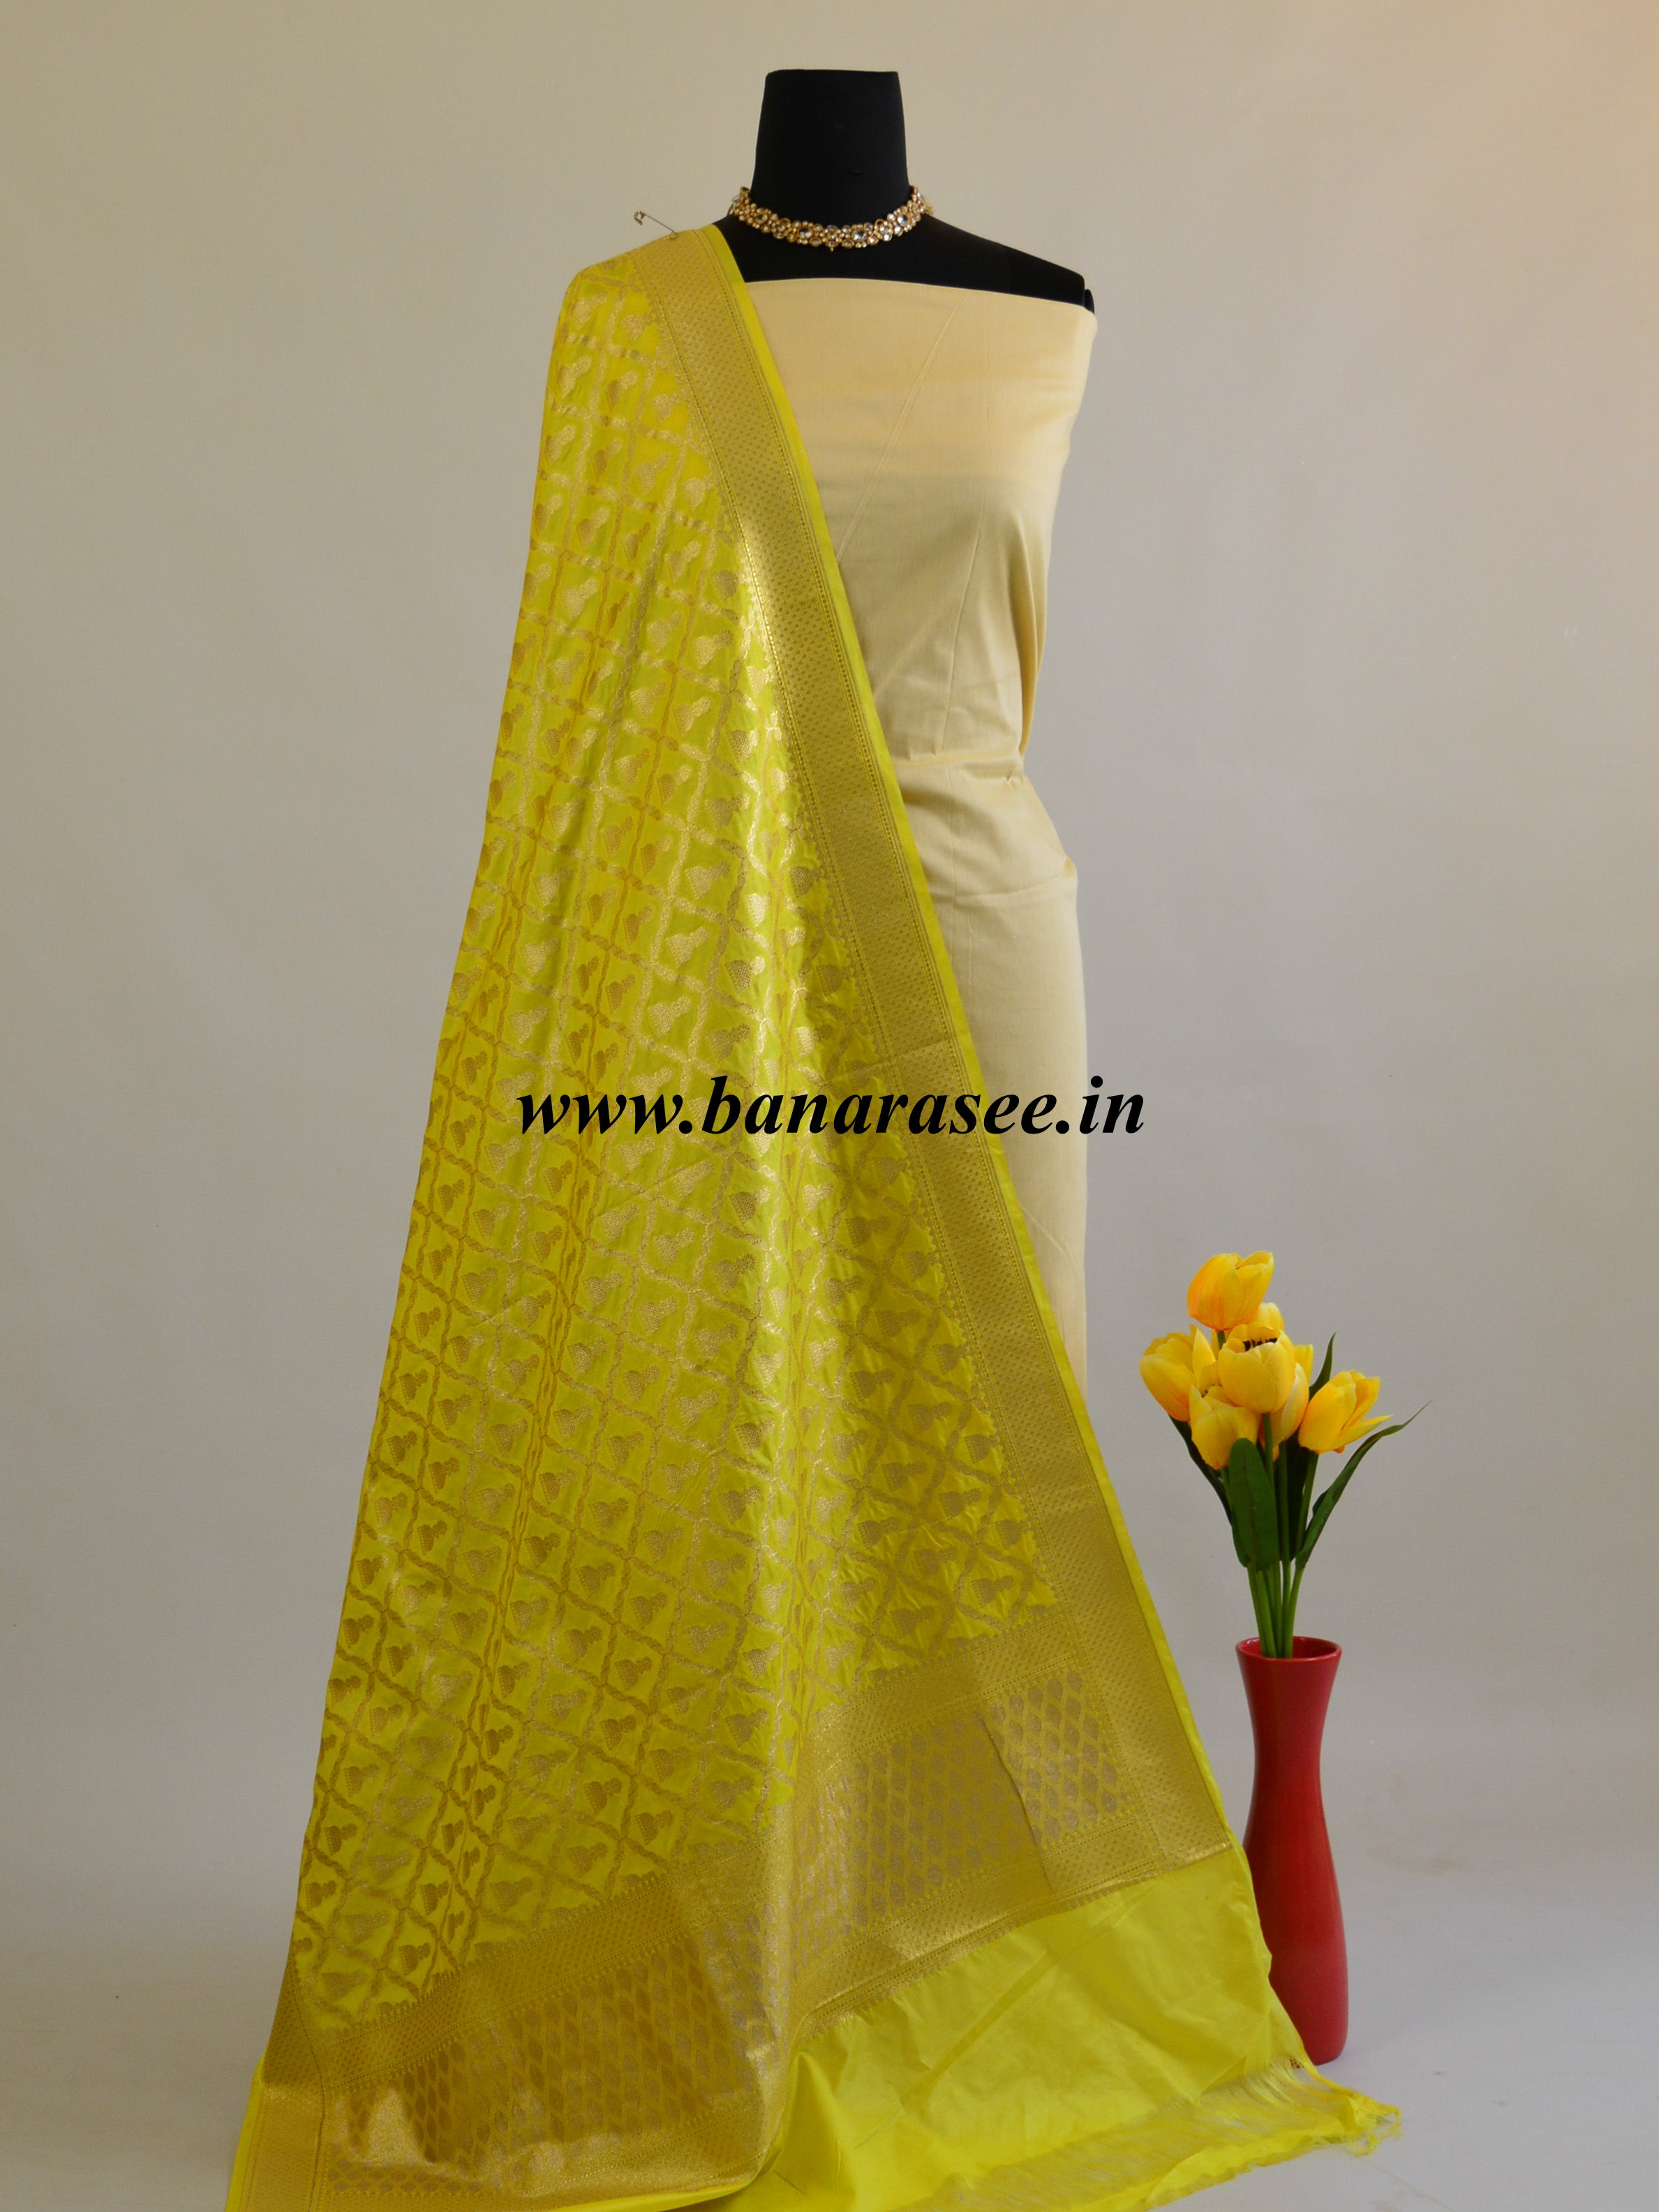 Banarasee Art Silk Dupatta With Jhumki Motif-Lemon Yellow